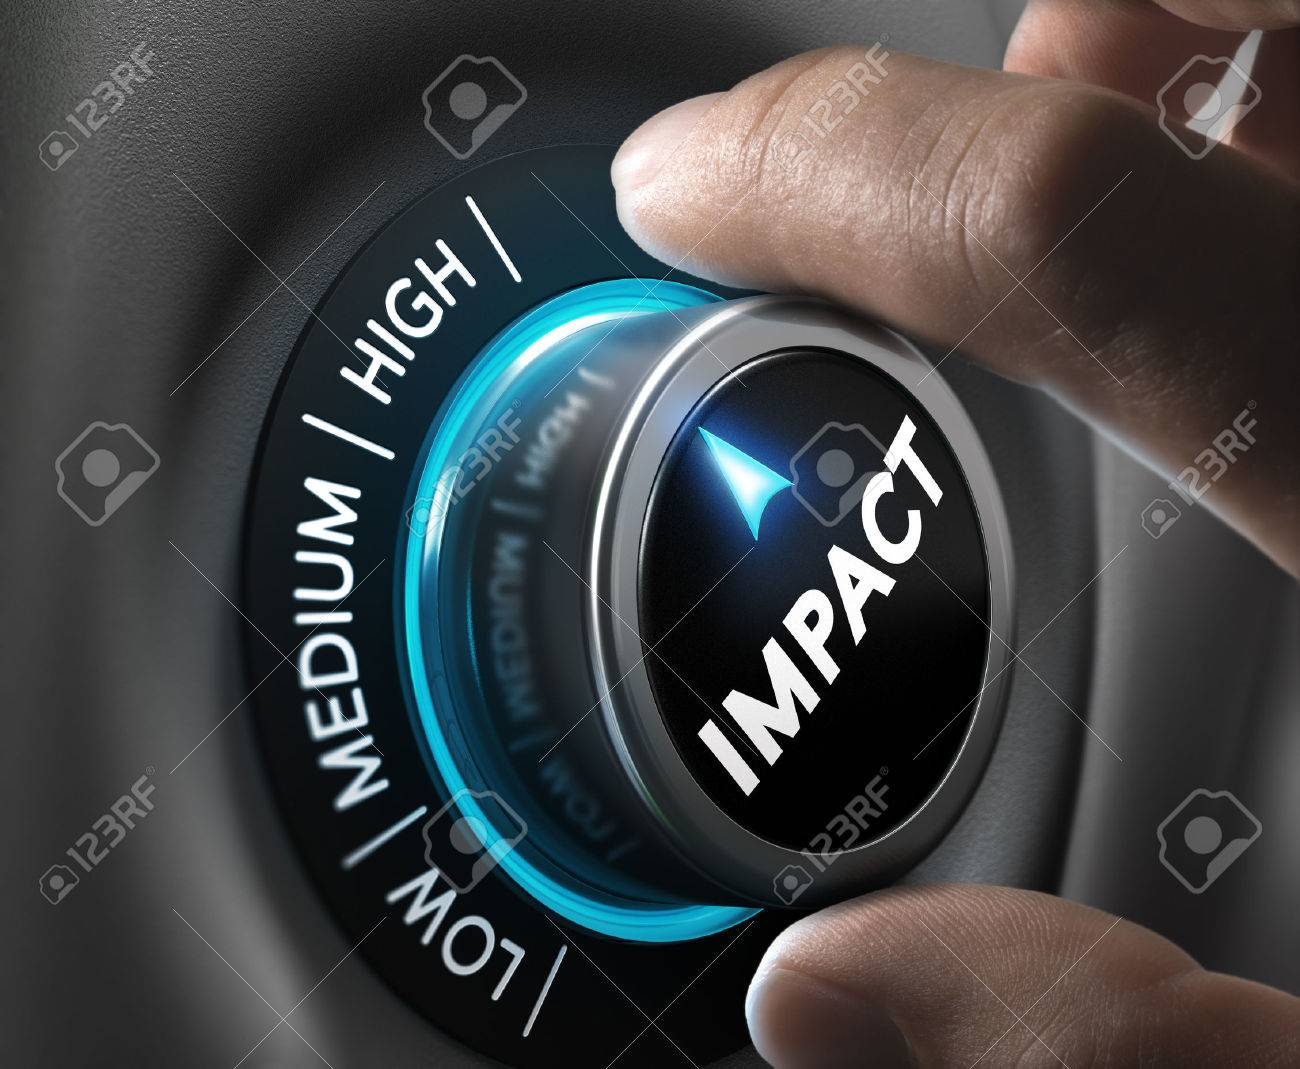 Man hand turning a knob in the highest position, Concept image for illustration of high impact communication and advertising campaign. - 47398903